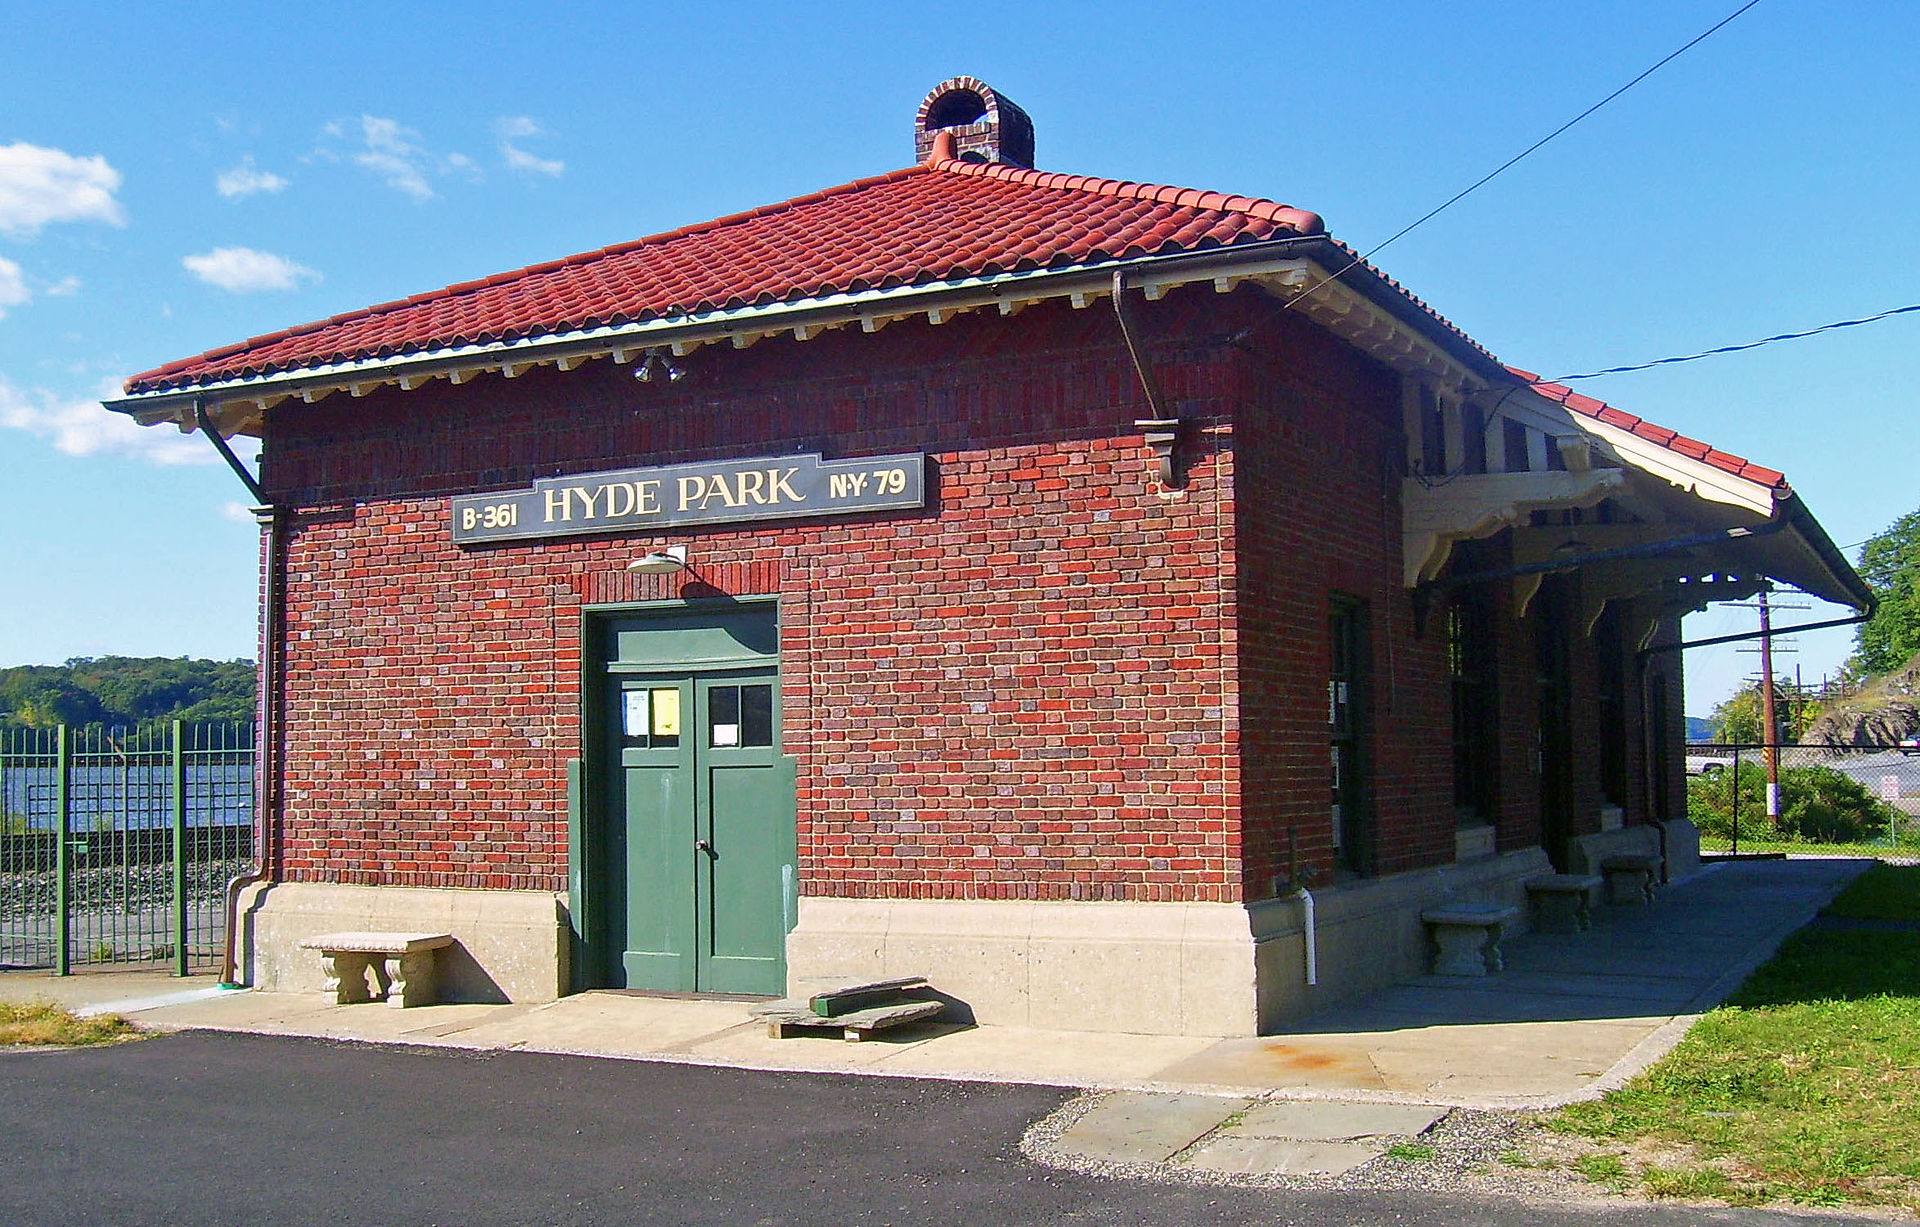 The Hyde Park Railroad Station